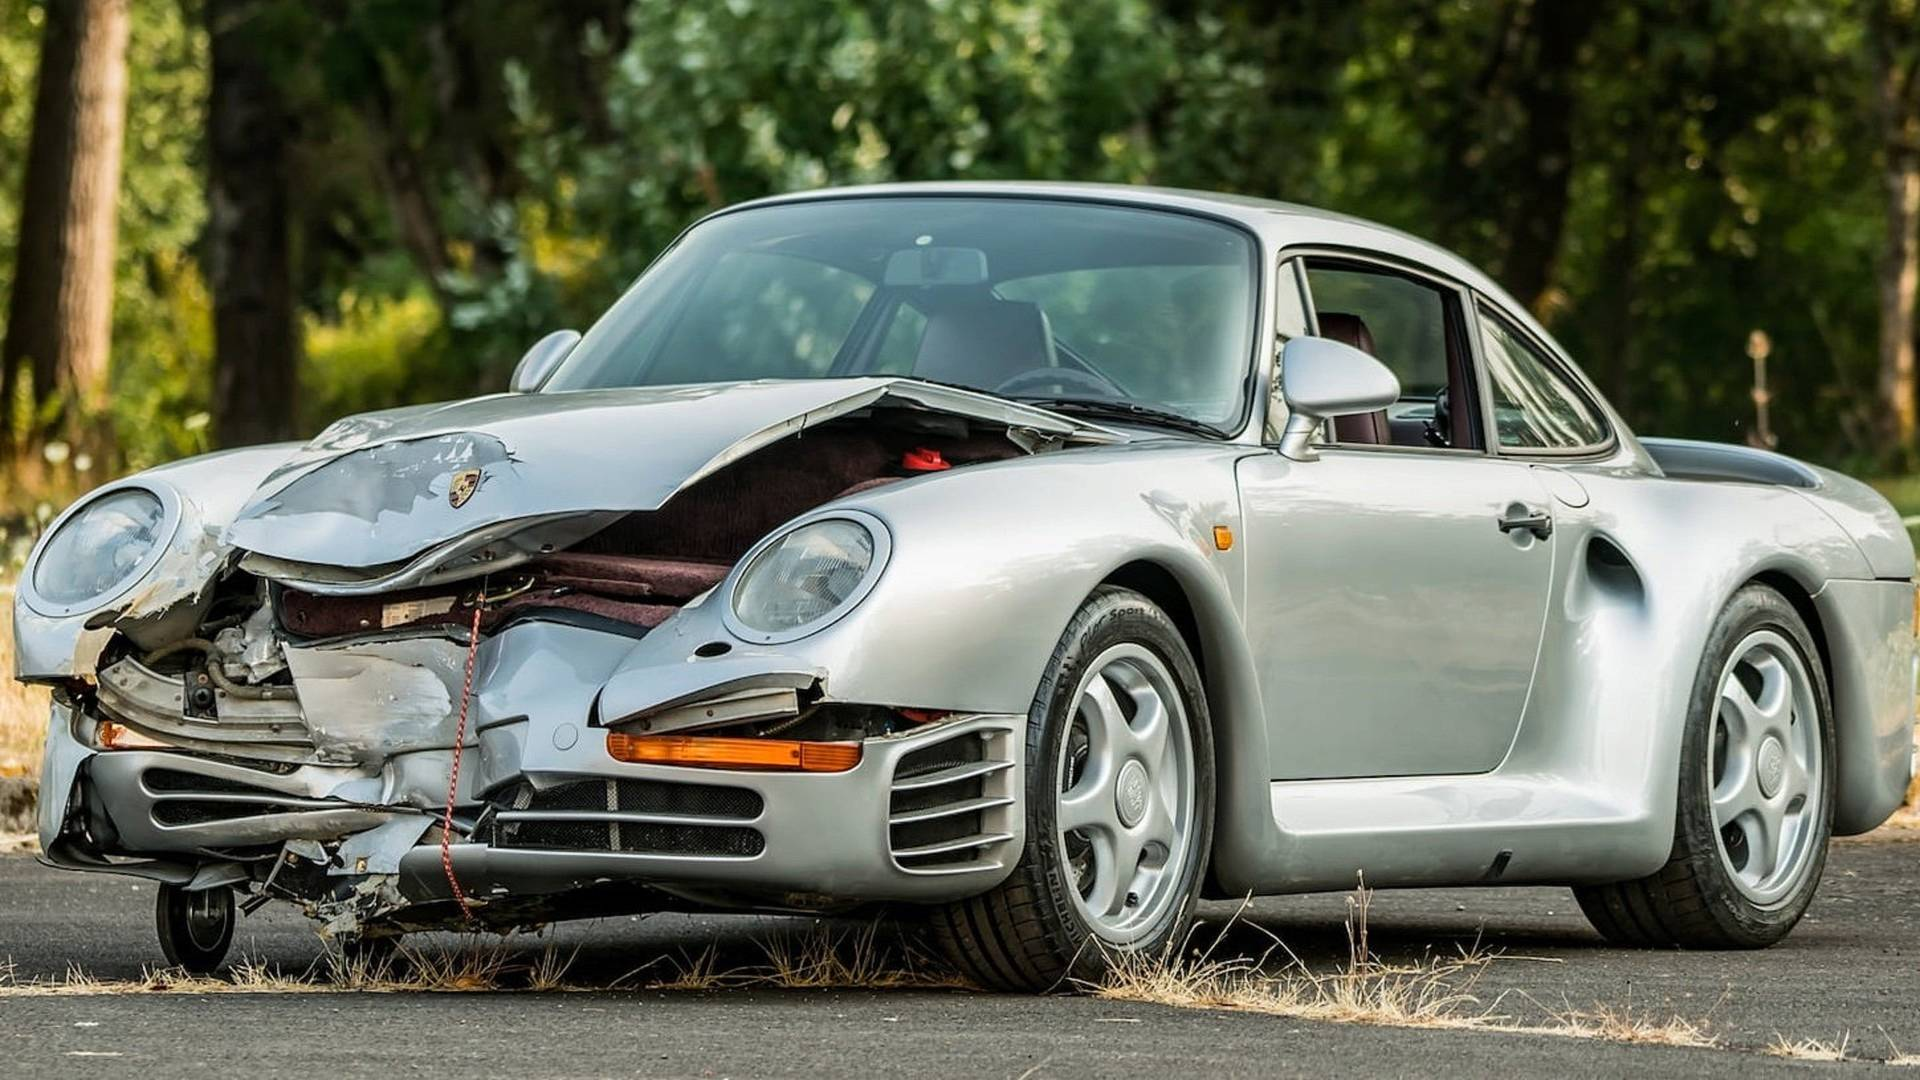 Busted Up Porsche 959 Sold At Auction For $425,000